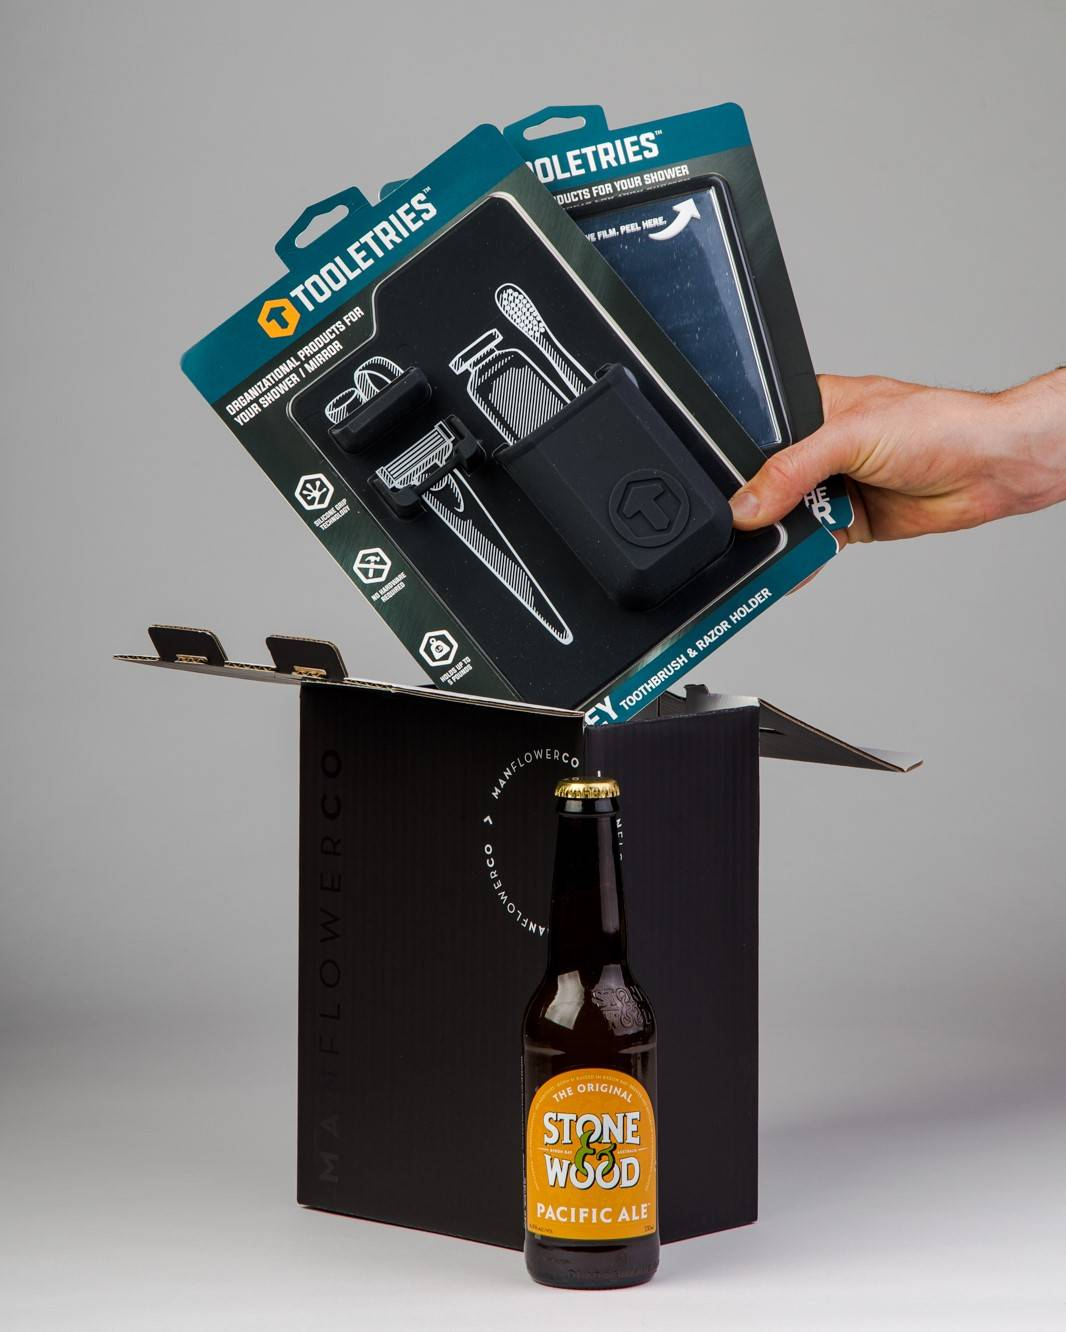 Toast to everyday occasions with the Tooletries Gift Pack, one of the beer gifts in Manflower Co's drinkable range.